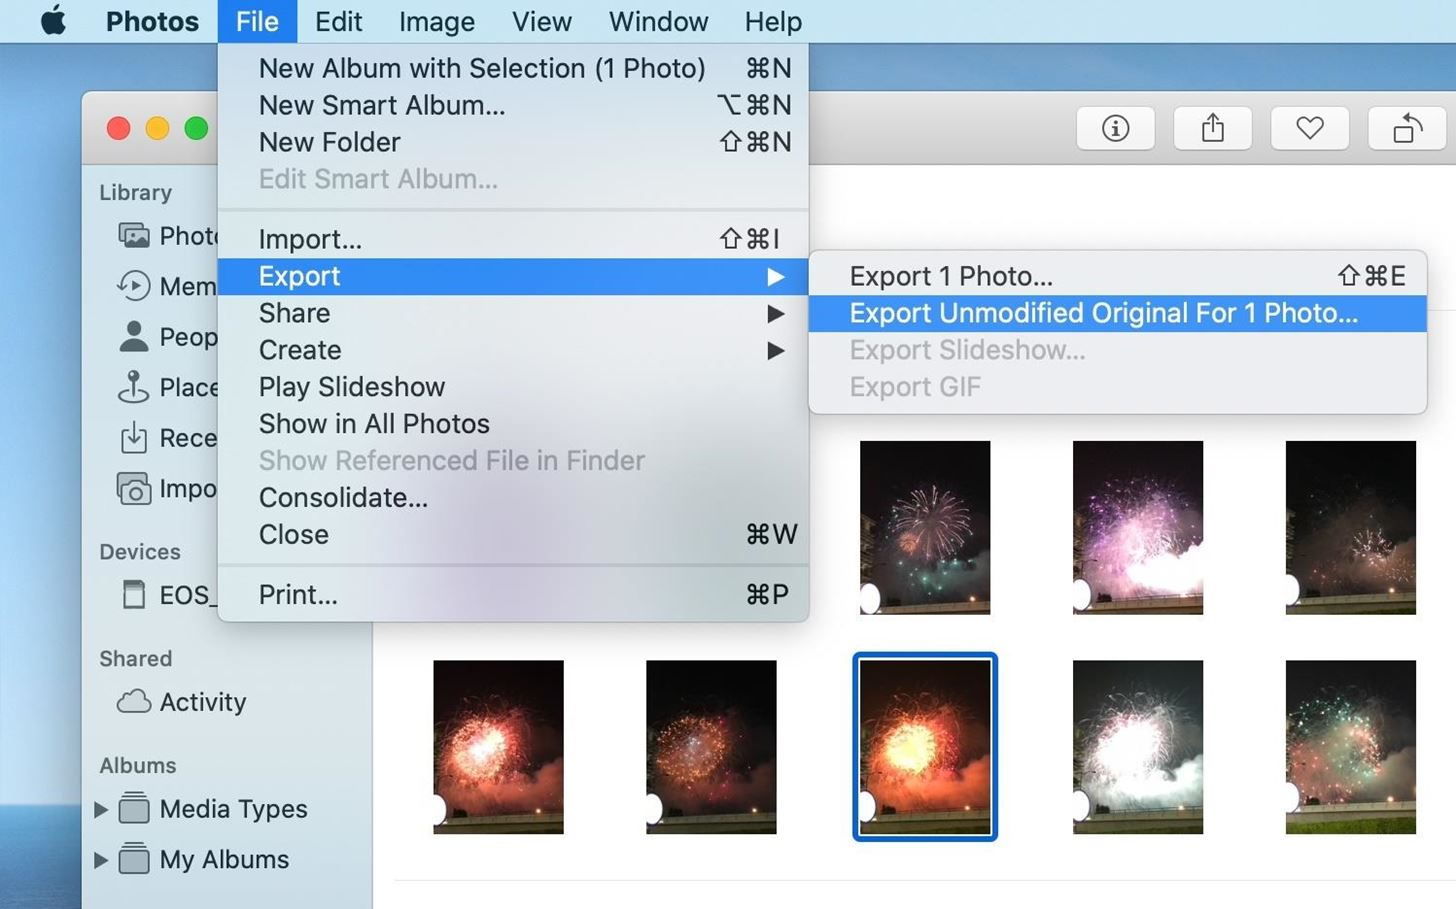 How to Export Your Original Images, Live Photo Videos & Metadata in Apple Photos for Mac